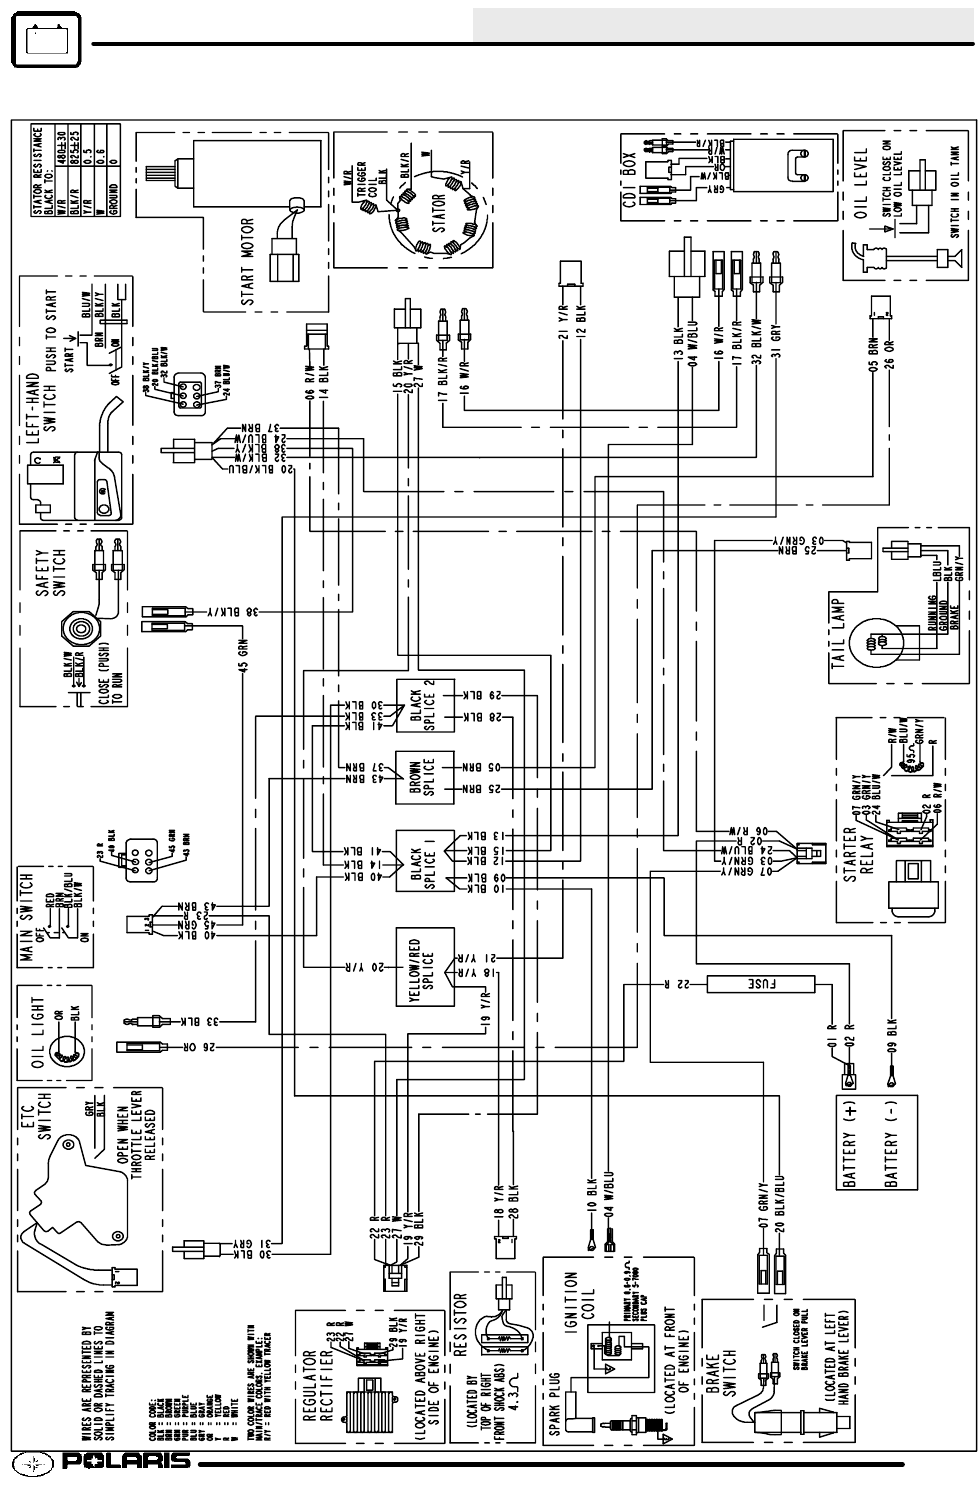 medium resolution of polaris wiring schematic wiring diagram name wiring diagram for polaris trailblazer 250 polaris electrical diagram wiring